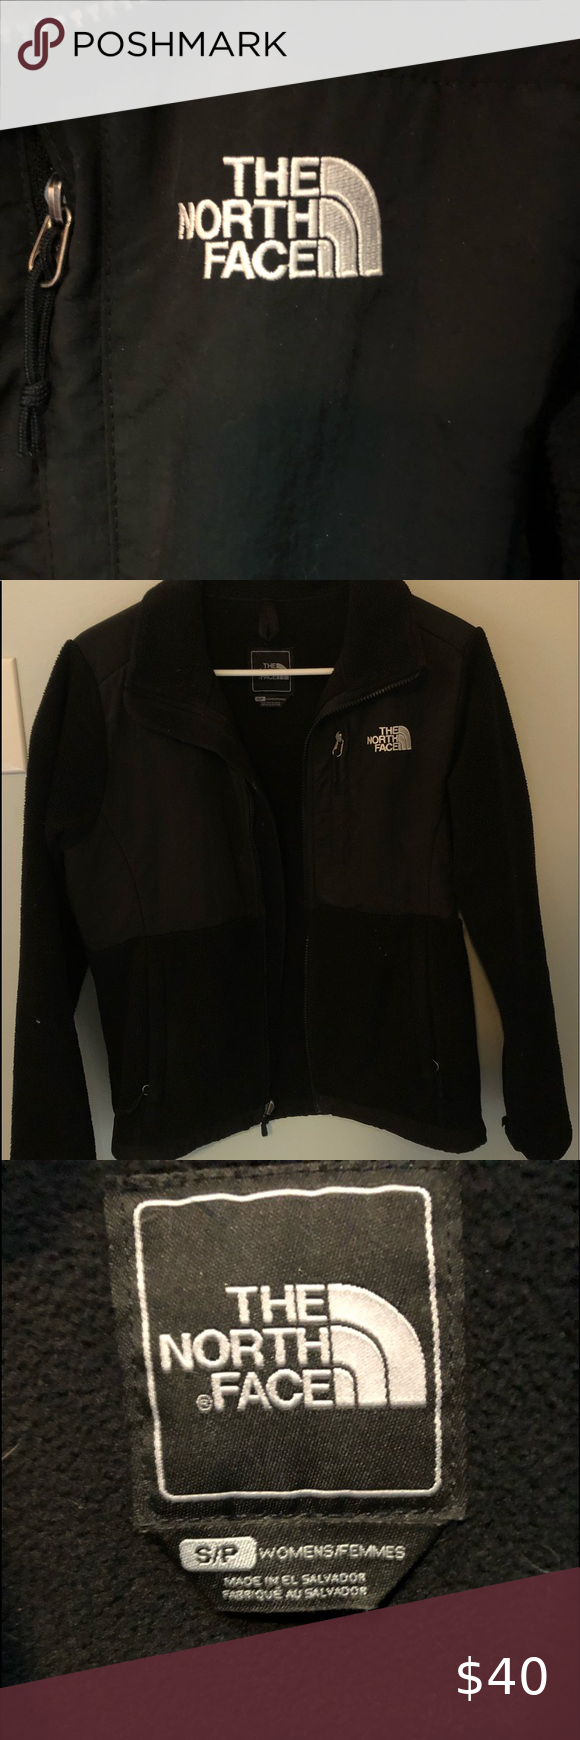 Woman S The North Face Winter Jacket Softly Used North Face Jacket Authentic Thick And Warm The Fleece Make Winter Jacket North Face Winter Jackets Jackets [ 1740 x 580 Pixel ]